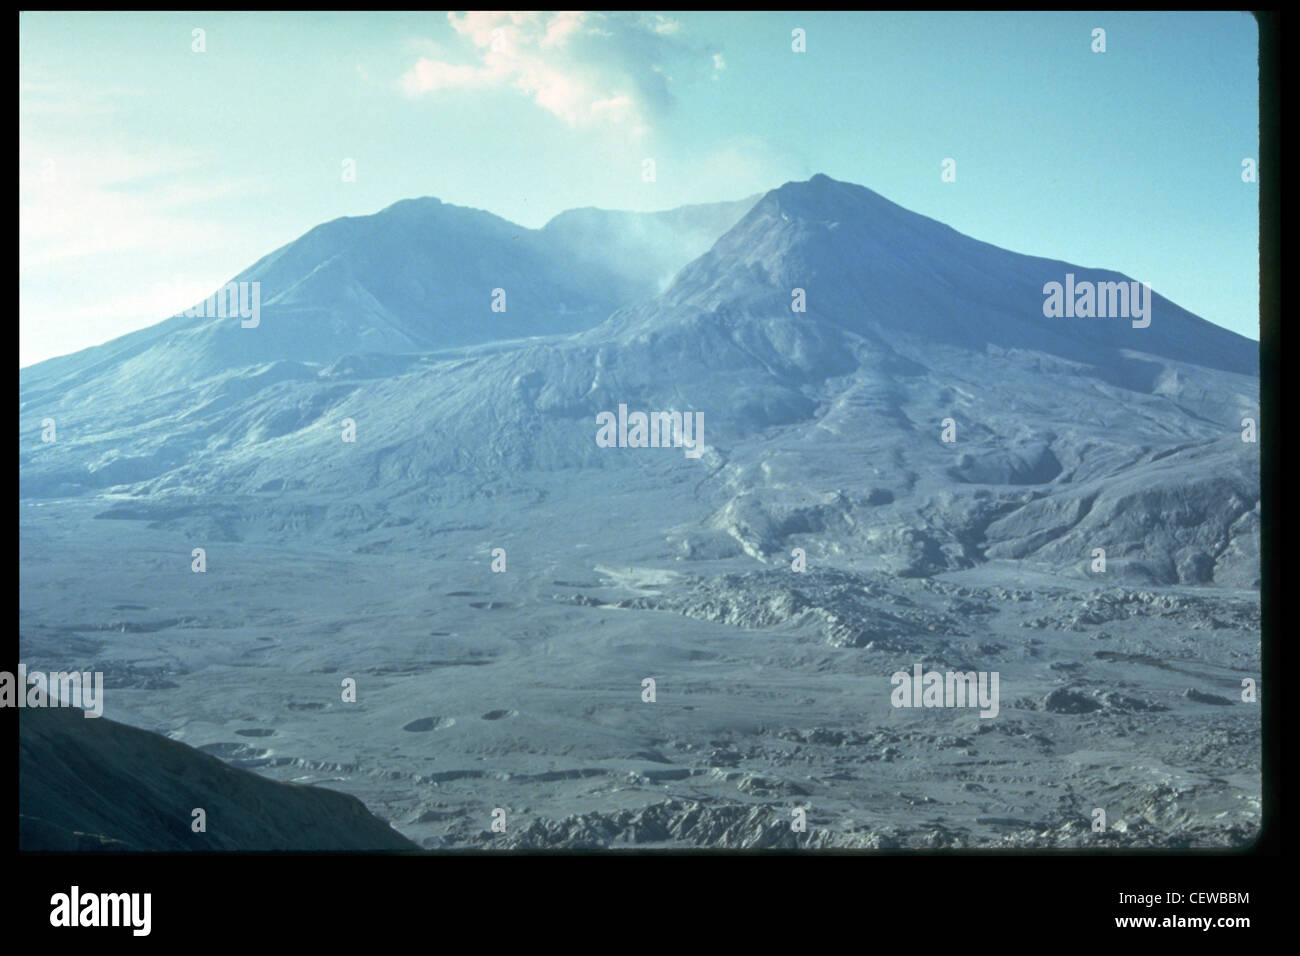 Mount St. Helens soon after the May 18, 1980 eruption, as viewed from Johnston's Ridge. - Stock Image